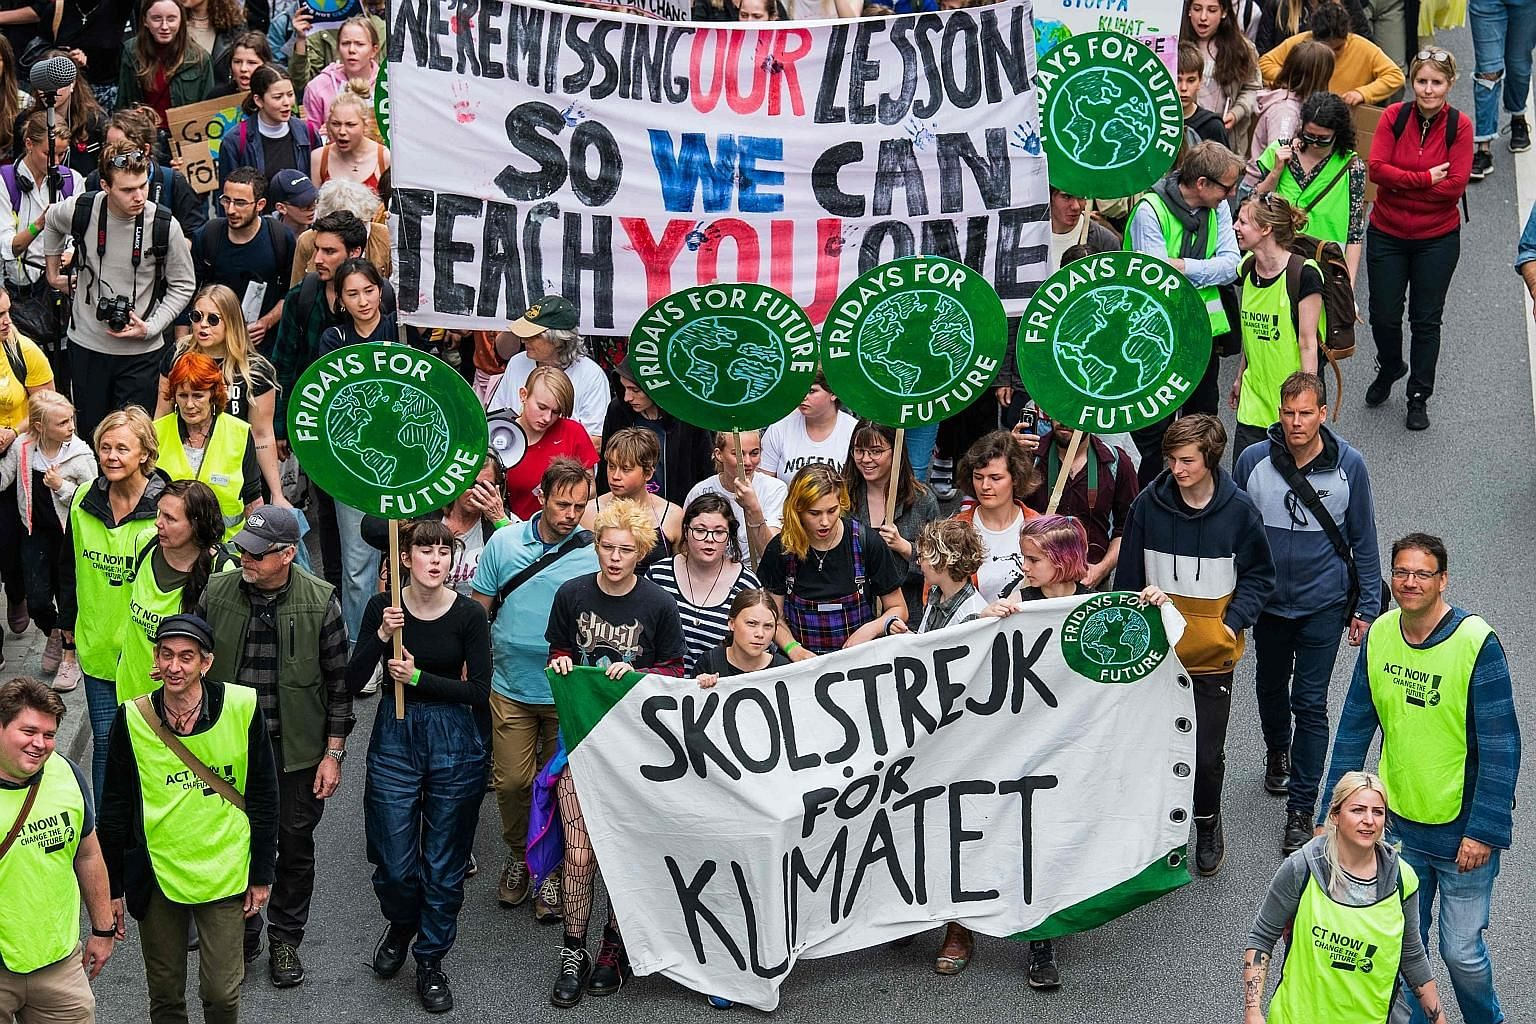 """Sixteen-year-old Swedish climate activist Greta Thunberg (second from left, behind the banner) during the """"Global Strike For Future"""" march in Stockholm last Friday, part of student protests aimed at sparking world leaders into action on climate chang"""